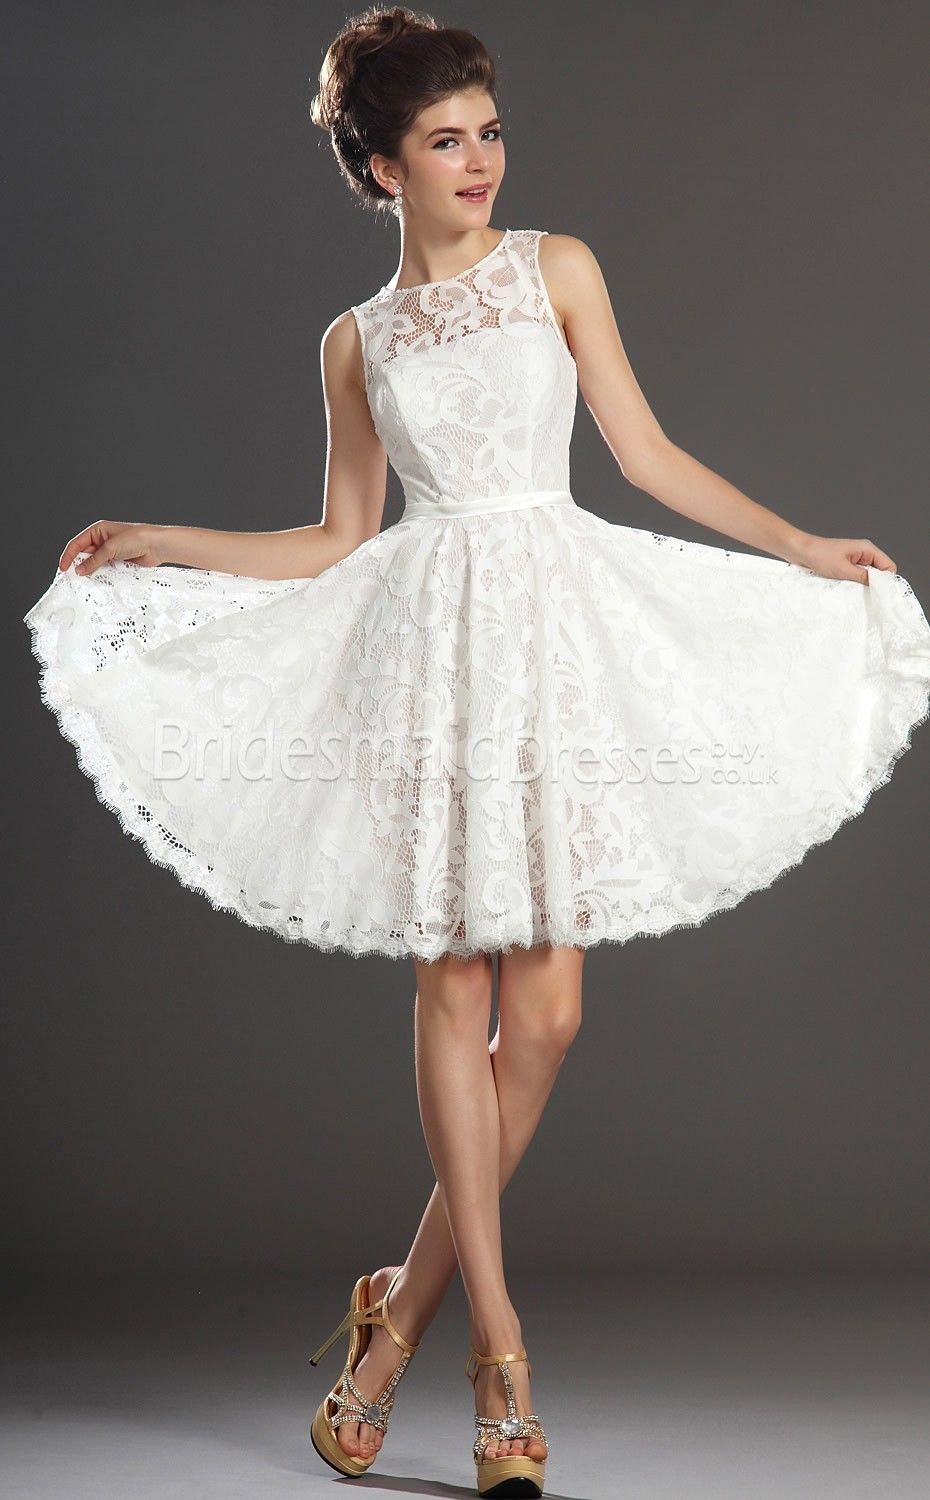 White Short Lace Bridesmaids Dresses